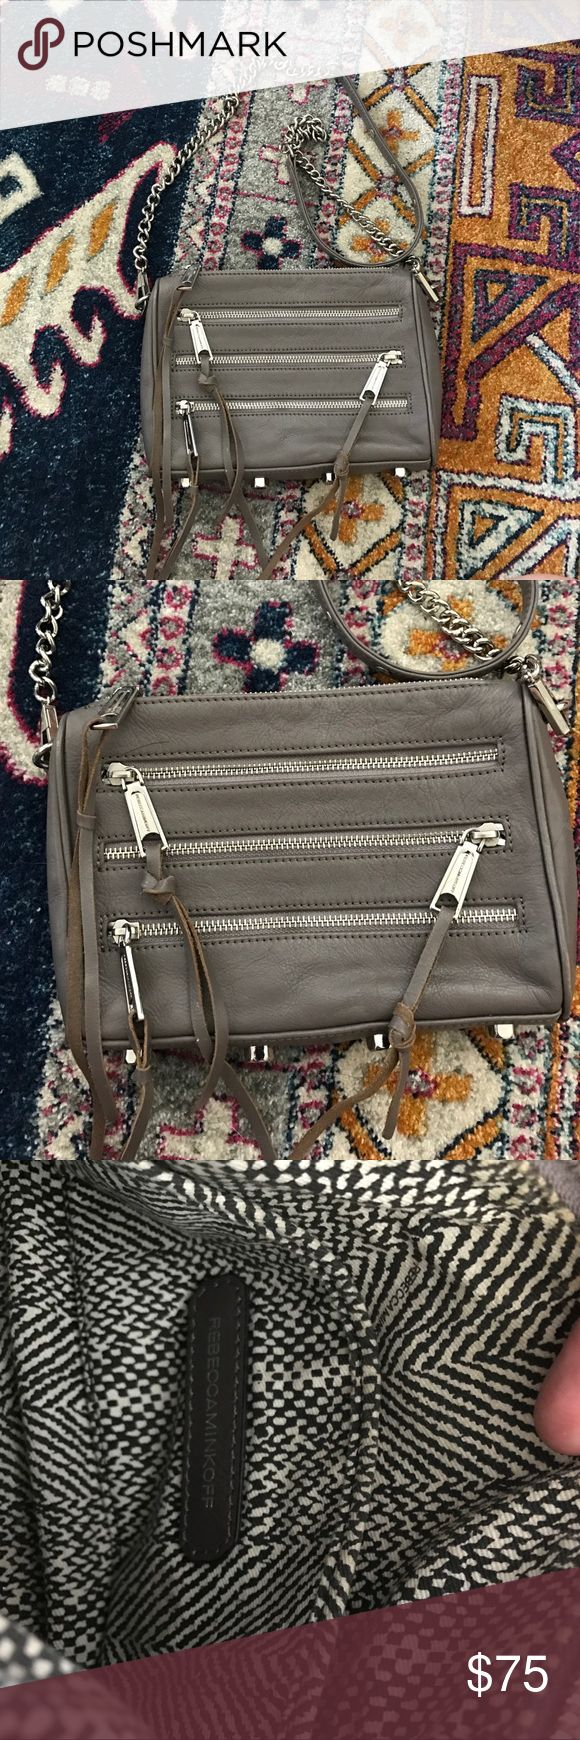 Grey Rebecca Minkoff purse Grey crossbody Rebecca Minkoff with tassels! It is in great condition and perfect size for everyday! Rebecca Minkoff Bags Crossbody Bags